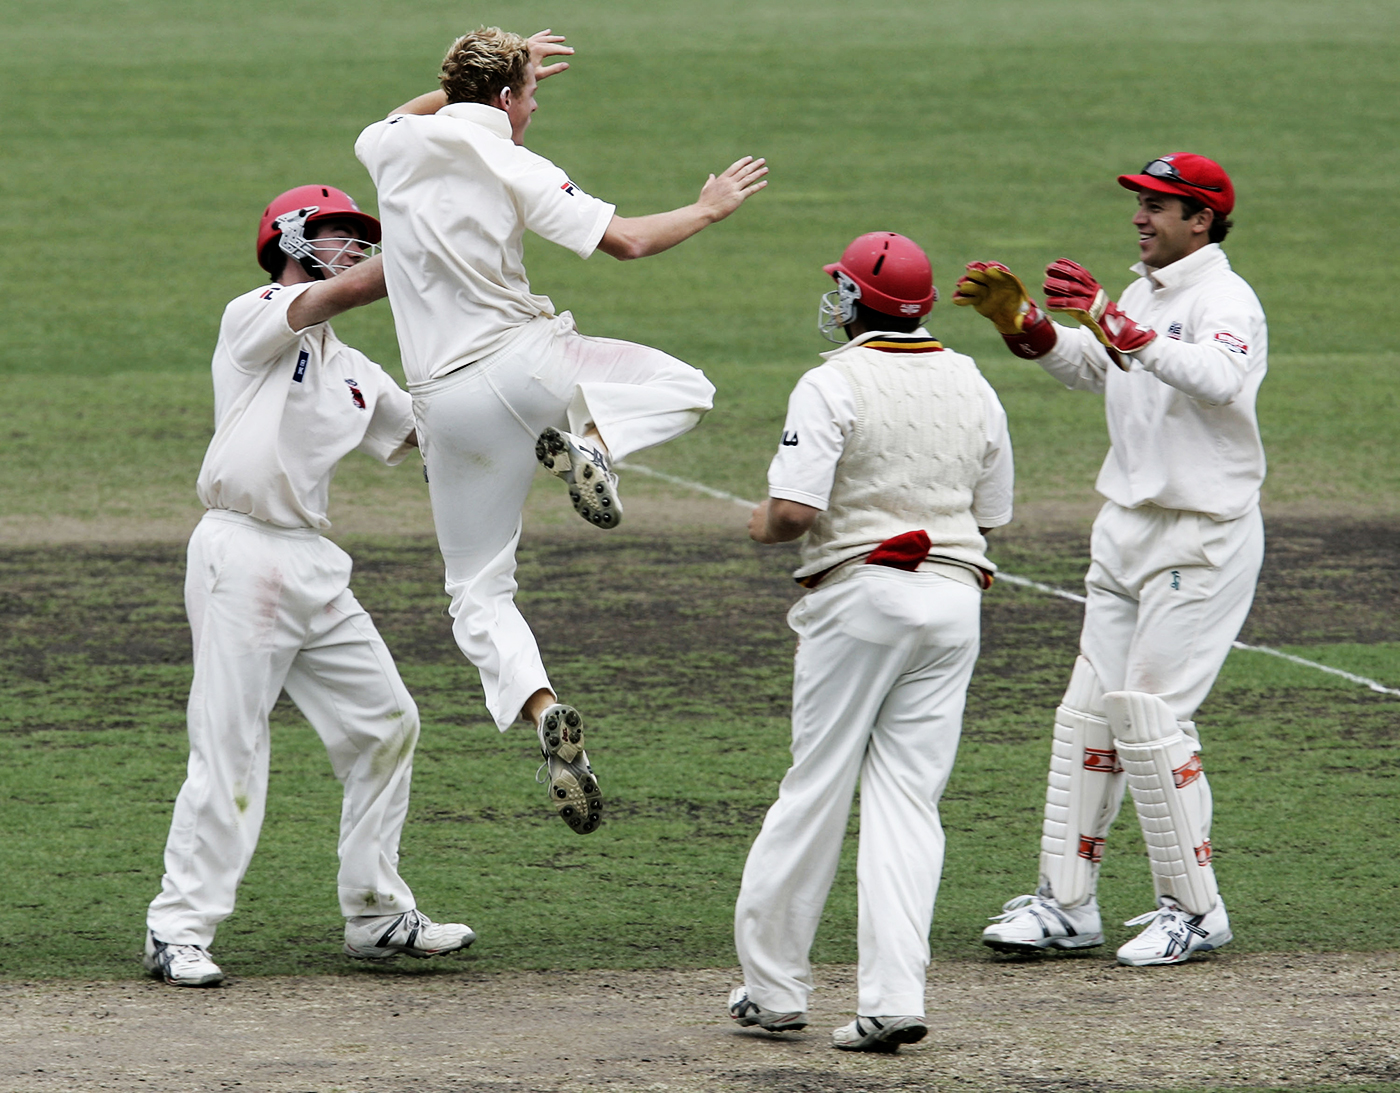 In his first Shield season, Cullen was South Australia's second-highest wicket-taker with 43